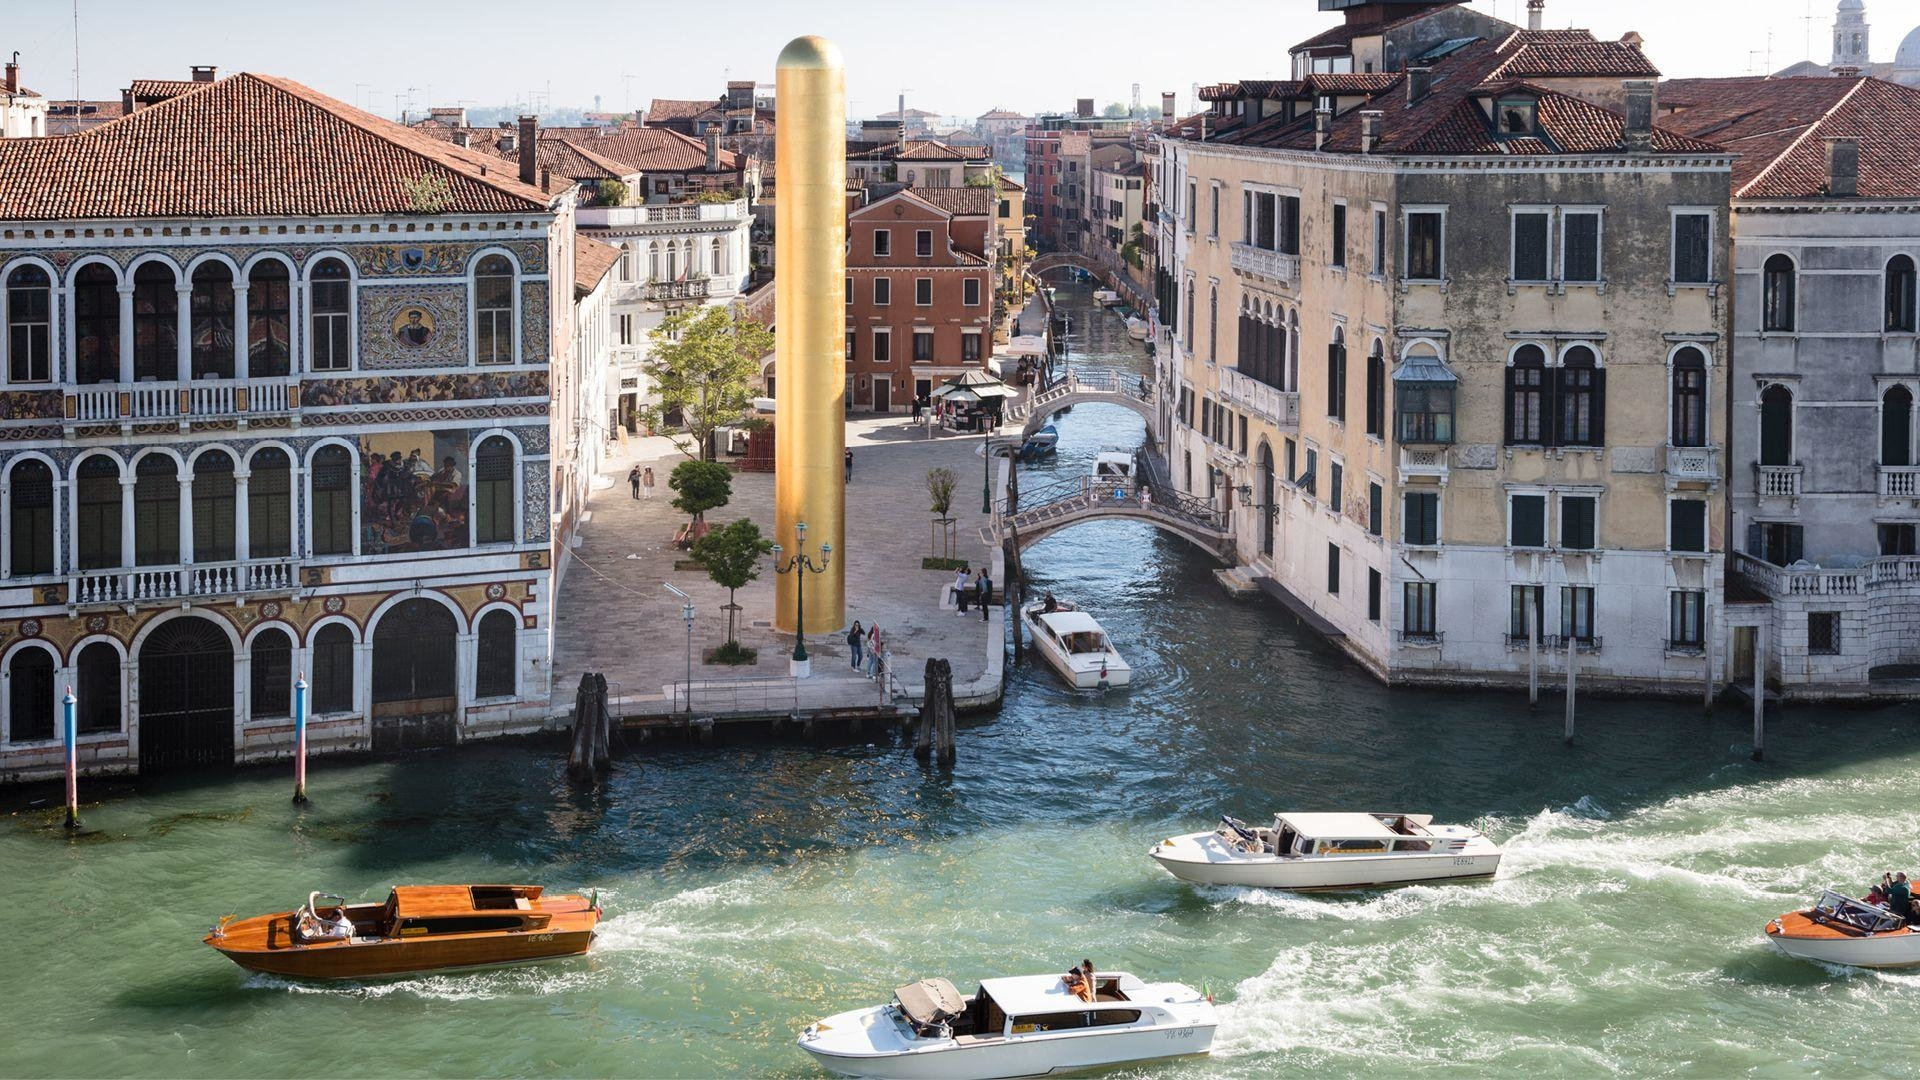 James Lee Byars' The Golden Tower Finally Realised In Venice